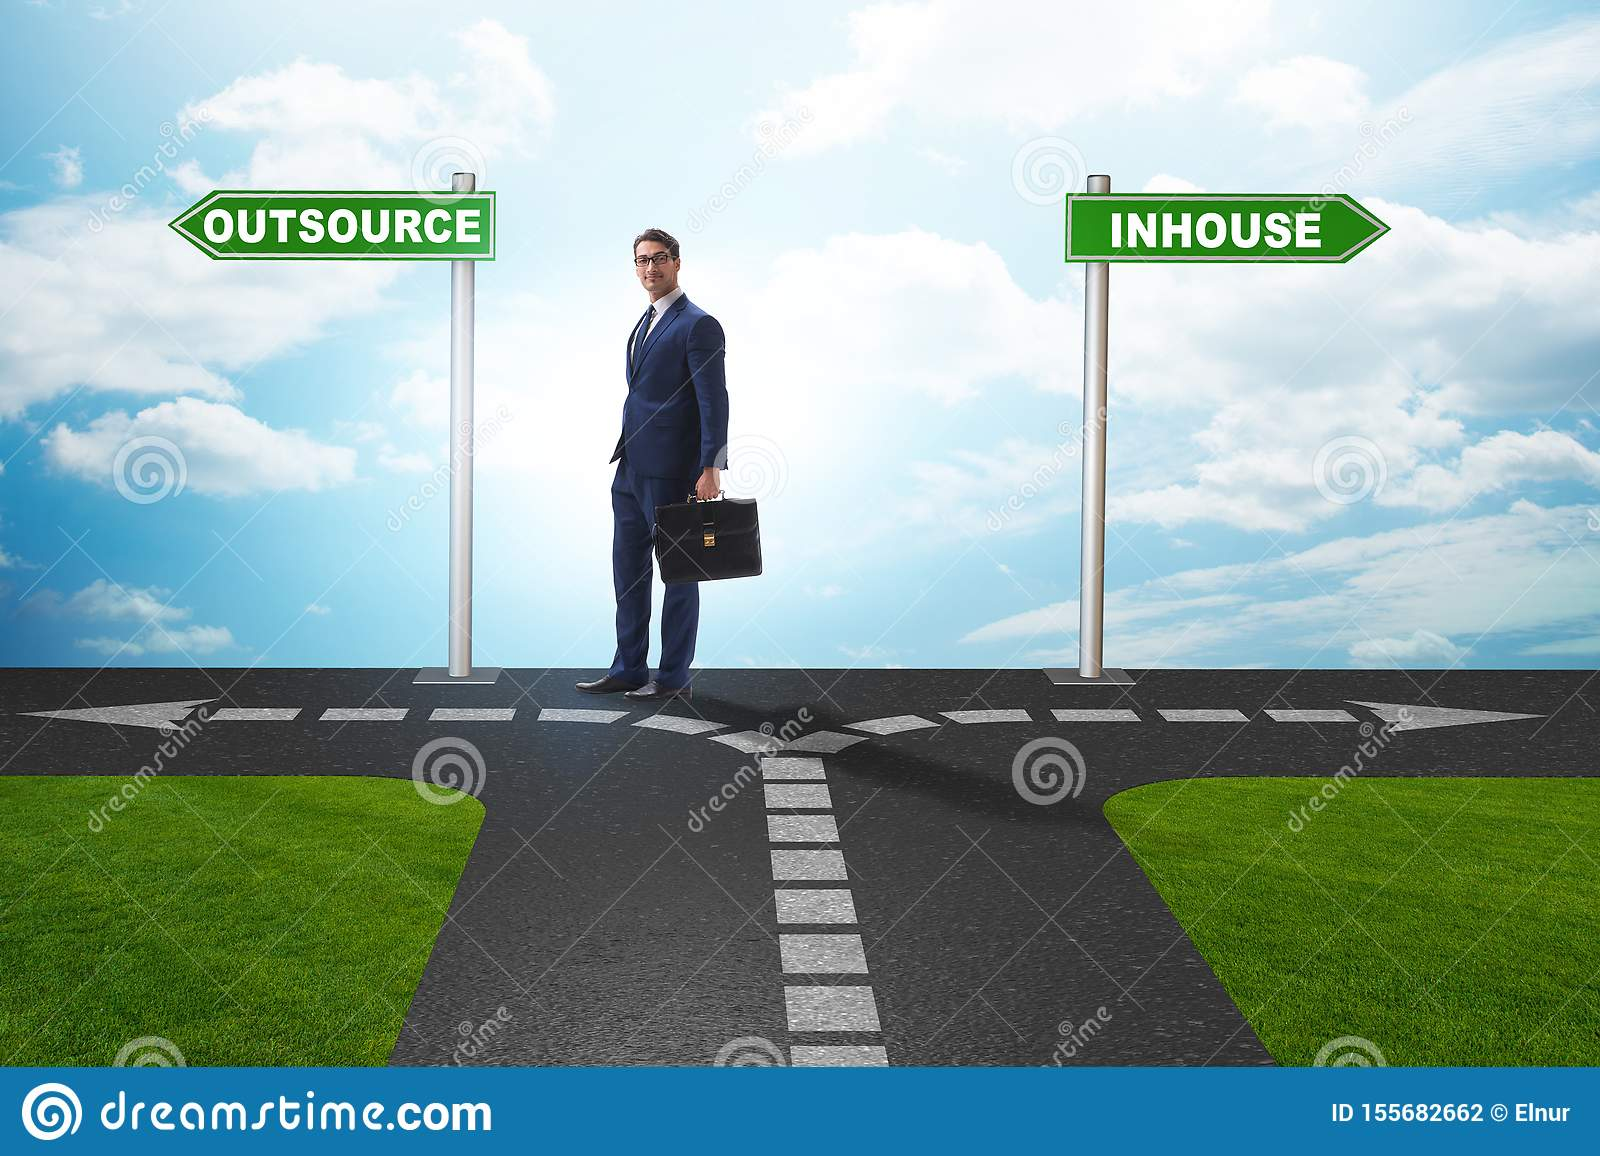 Businessman deciding between outsourcing and inhouse